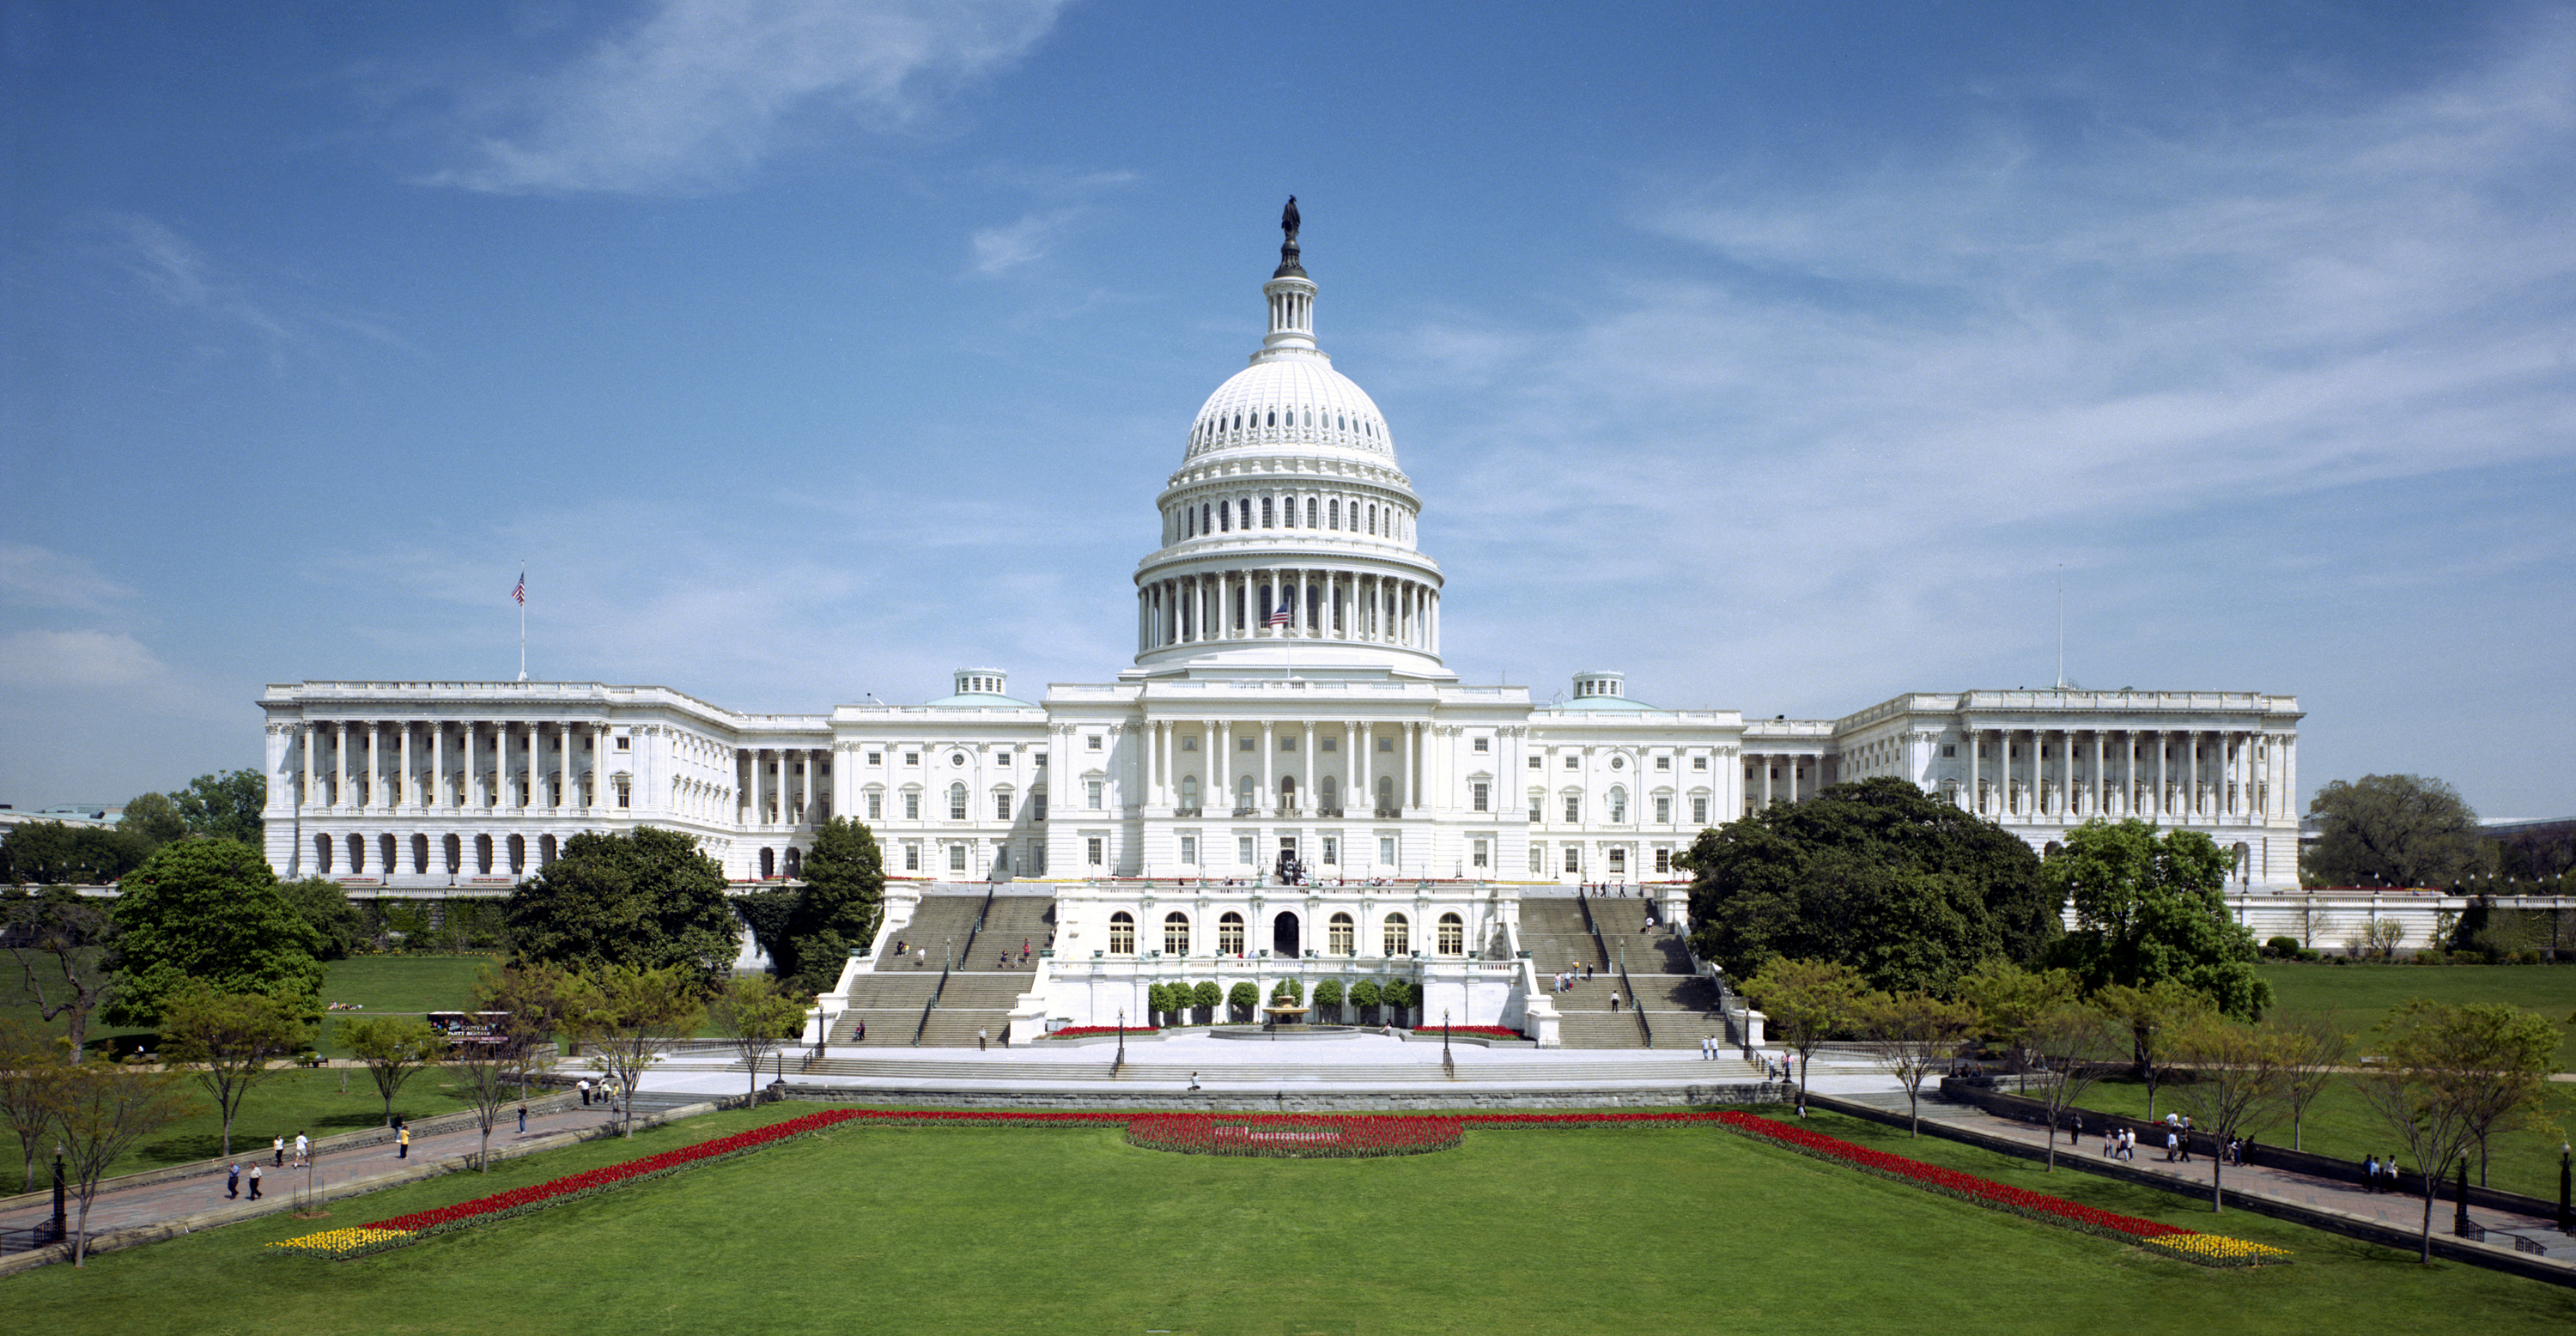 File:United States Capitol - west front.jpg - Wikipedia ...